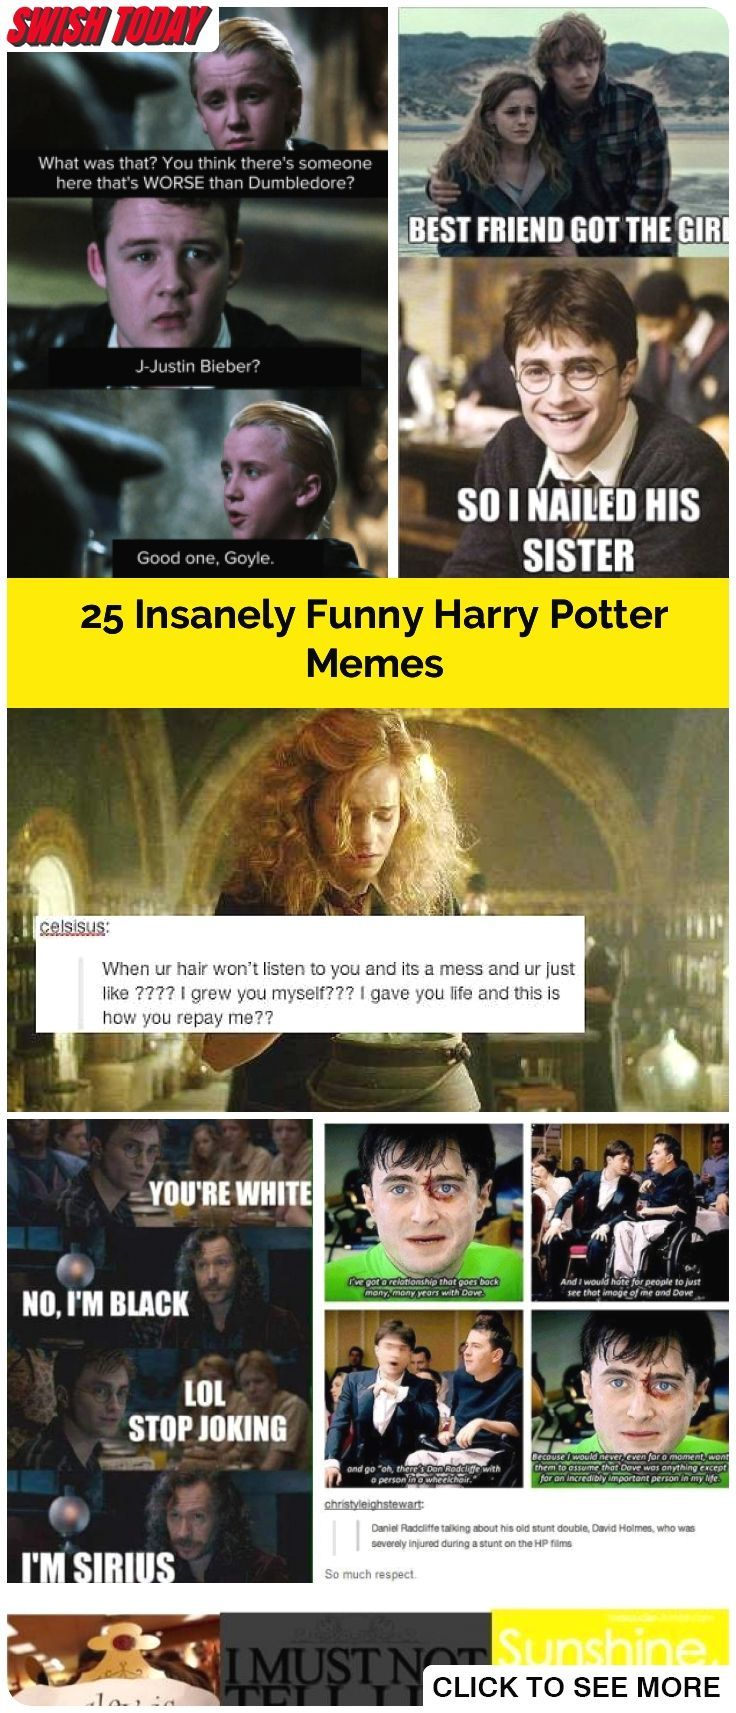 Insanely Funny Harry Potter Memes Will Knock You Down From A Broom Ride Harrypotter Memes Harry Potter Memes Hilarious Harry Potter Funny Harry Potter Memes